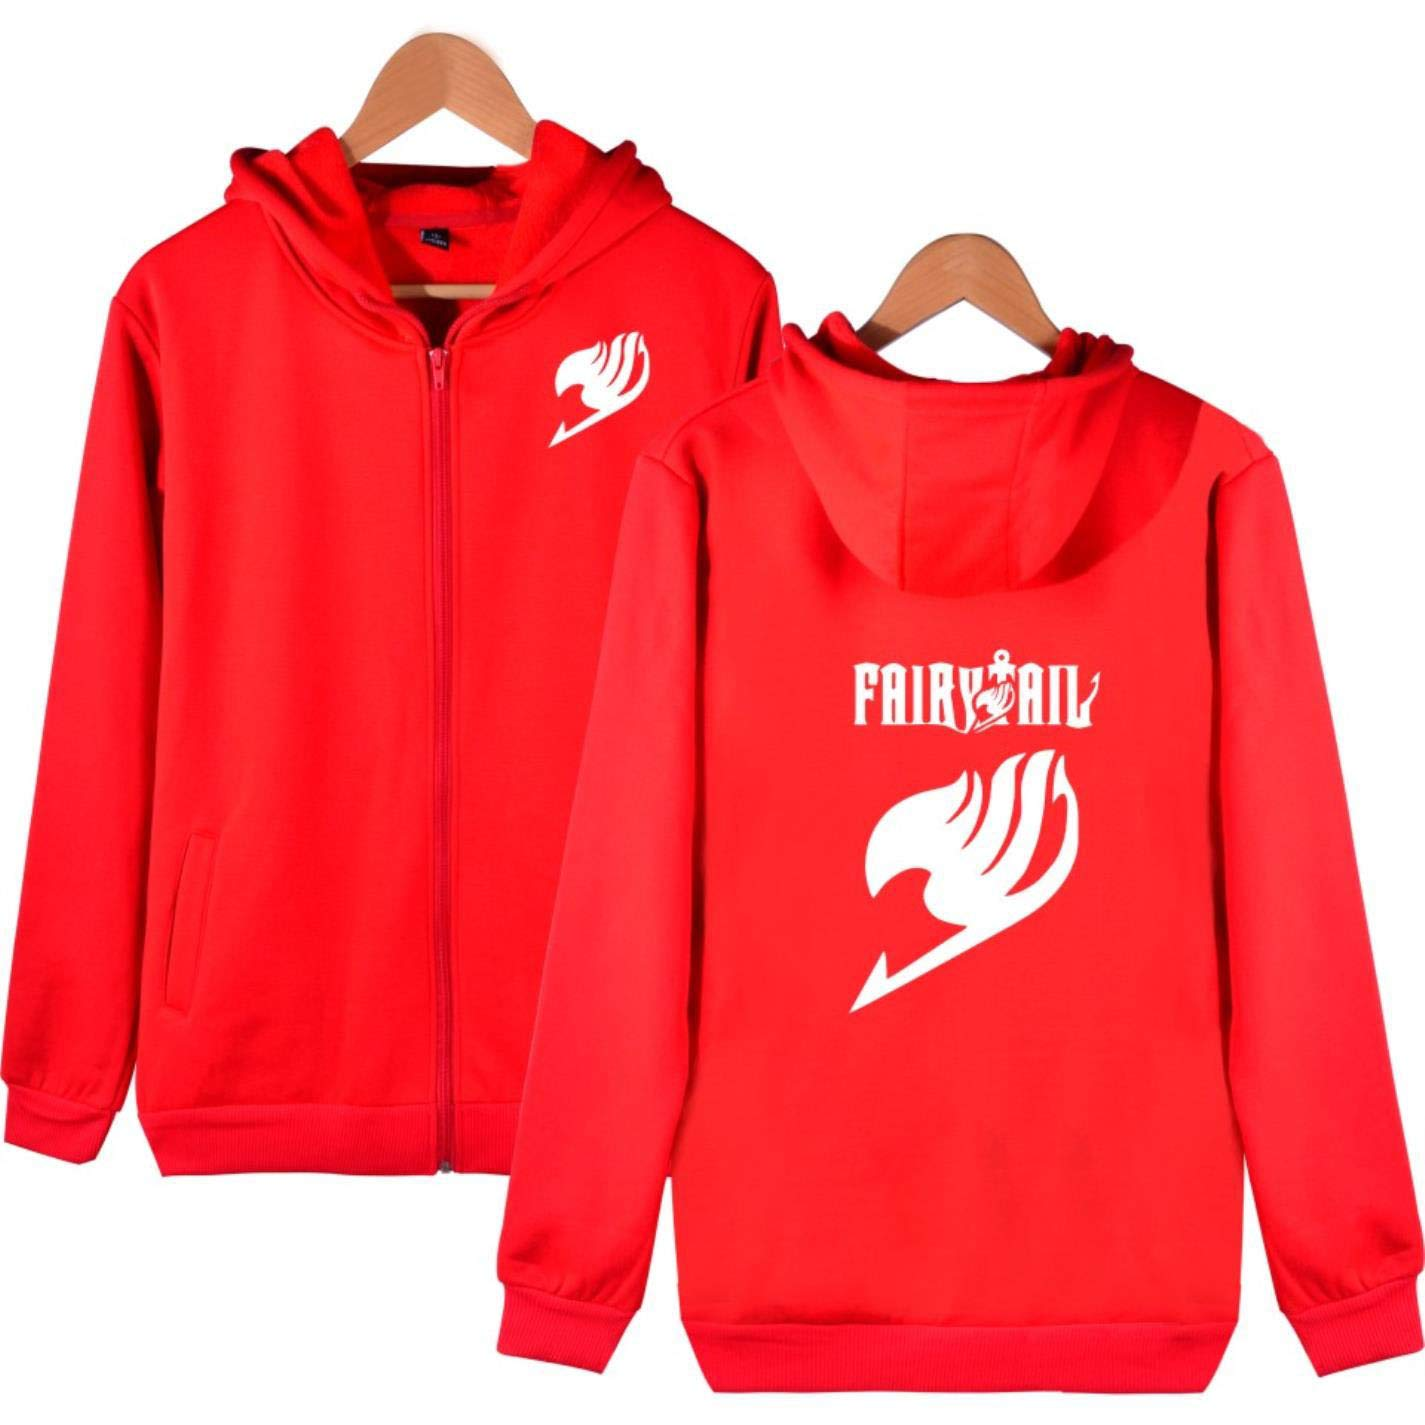 BWWX Harajuku Fairy Tail Print Hooddie Sweatshirt Men Women Zipper Hoodies at Amazon Womens Clothing store: